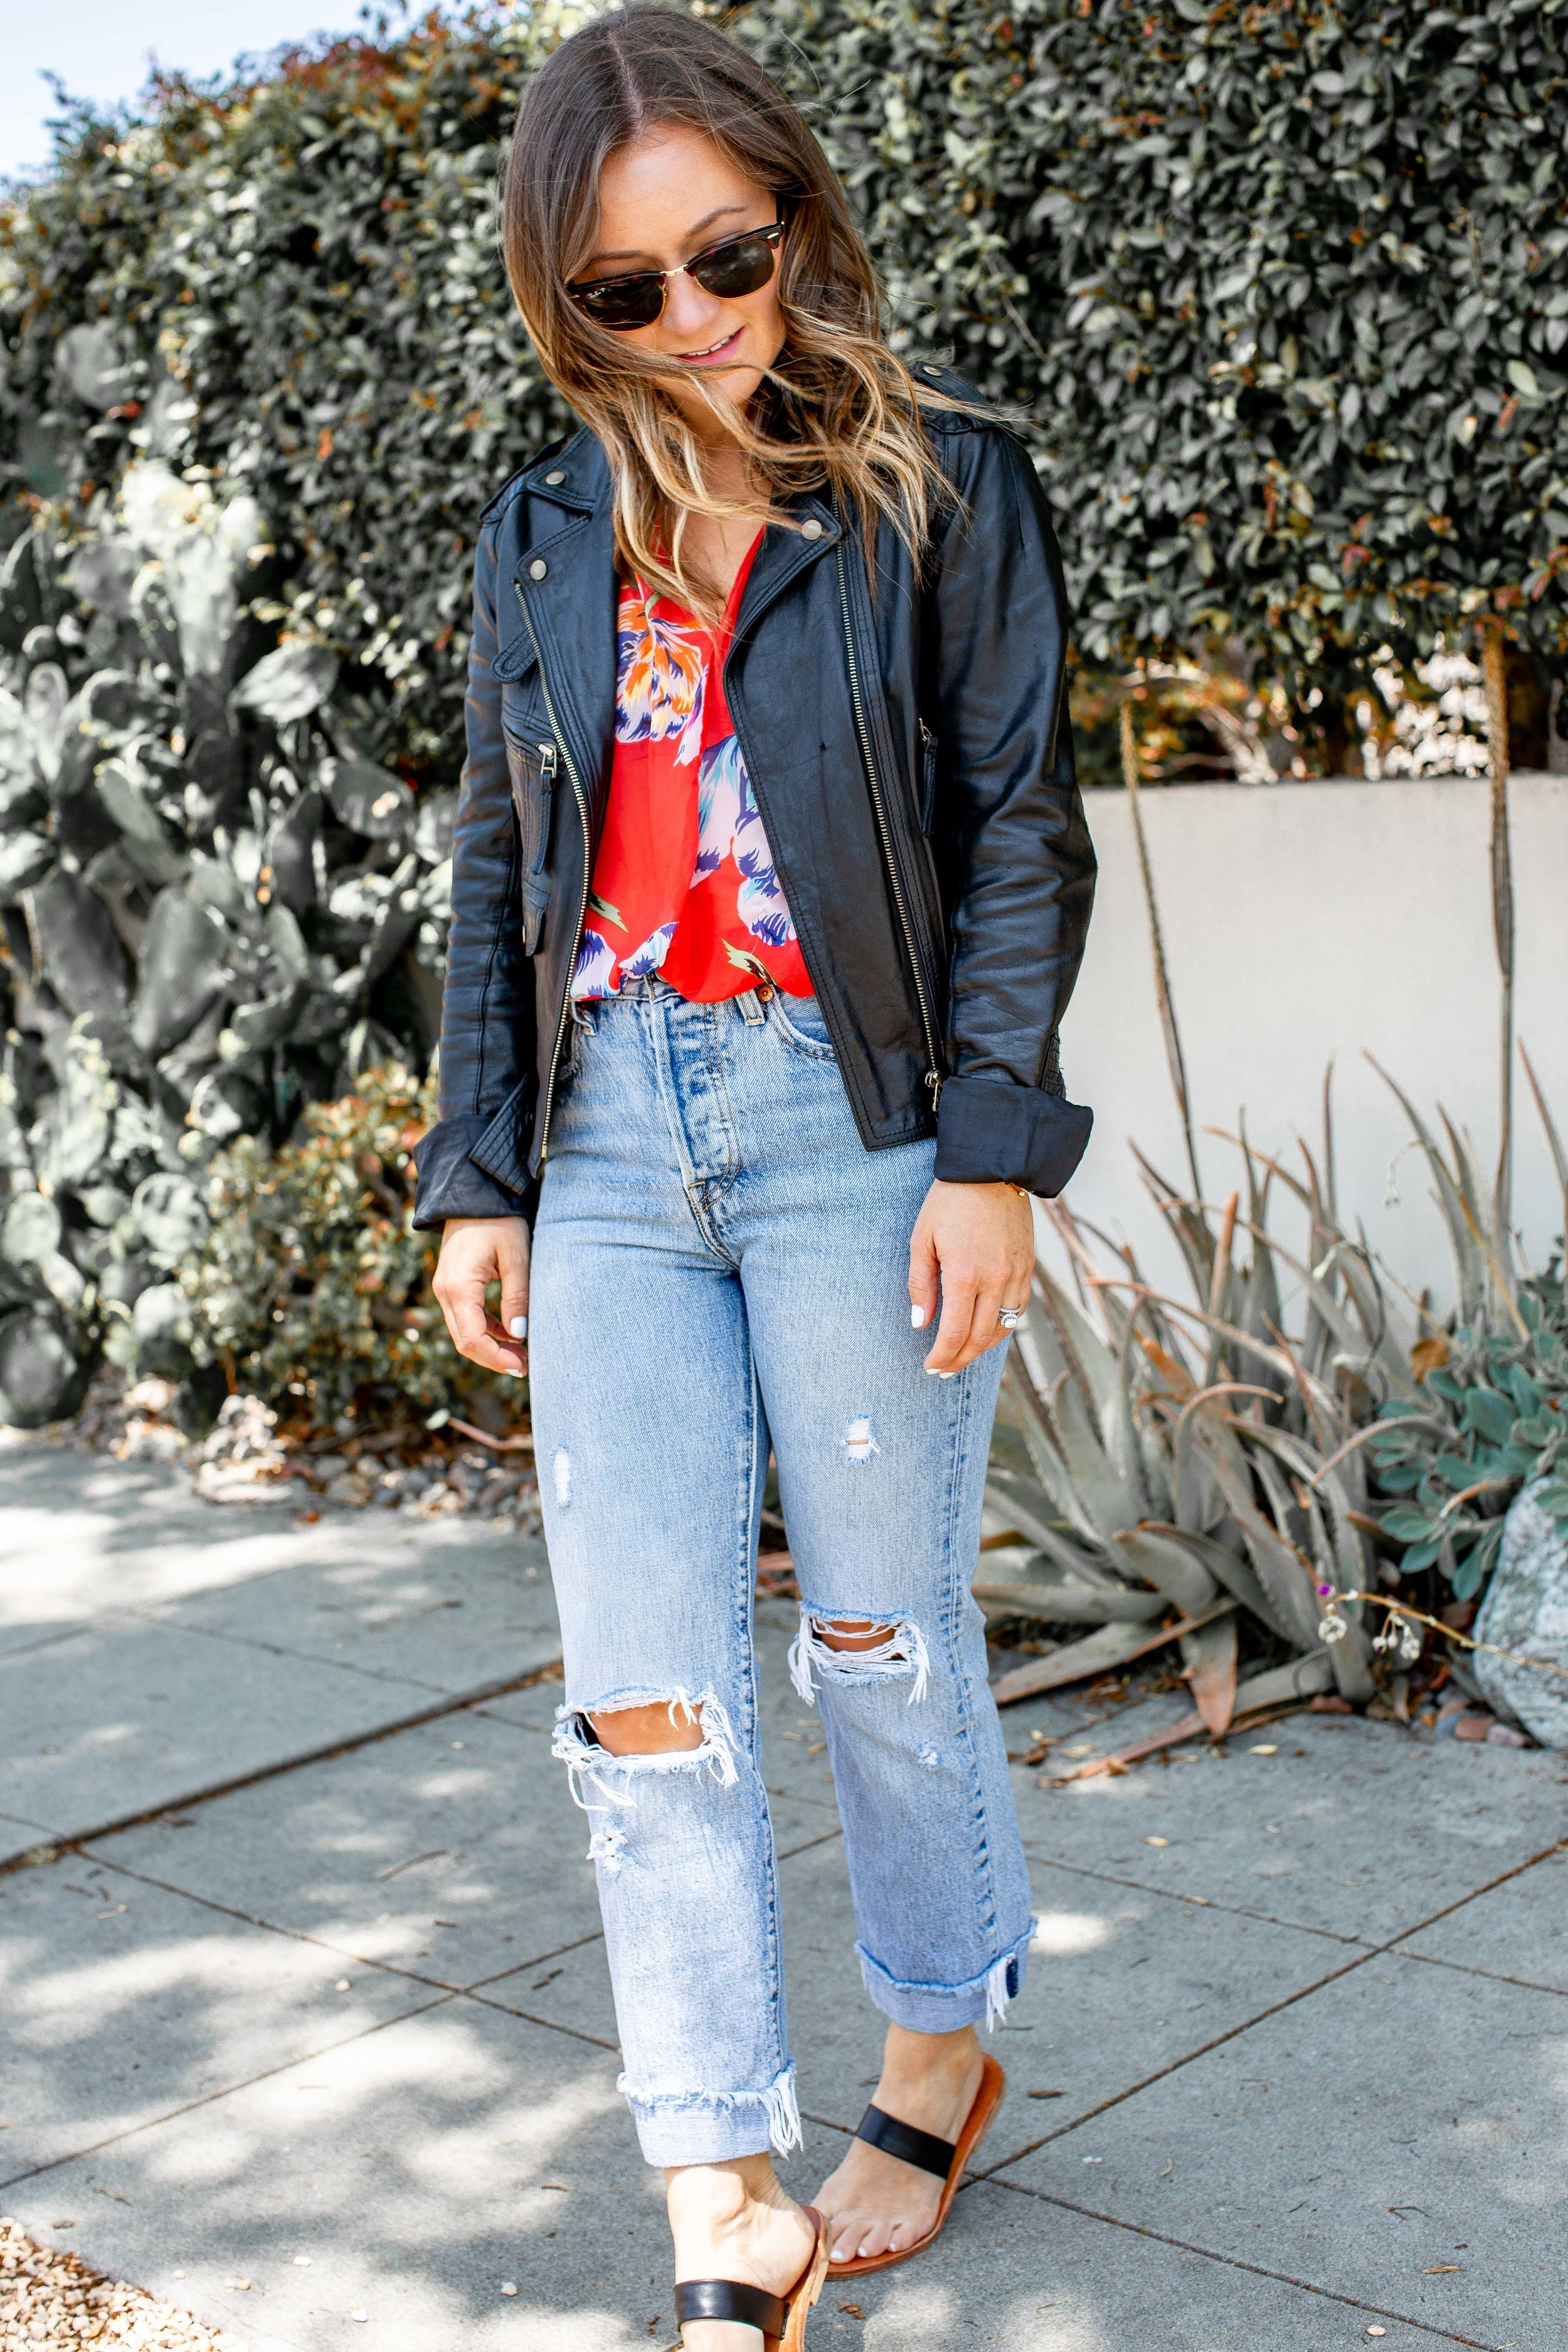 fizz-fade-red-top-levis-leather-12.jpg